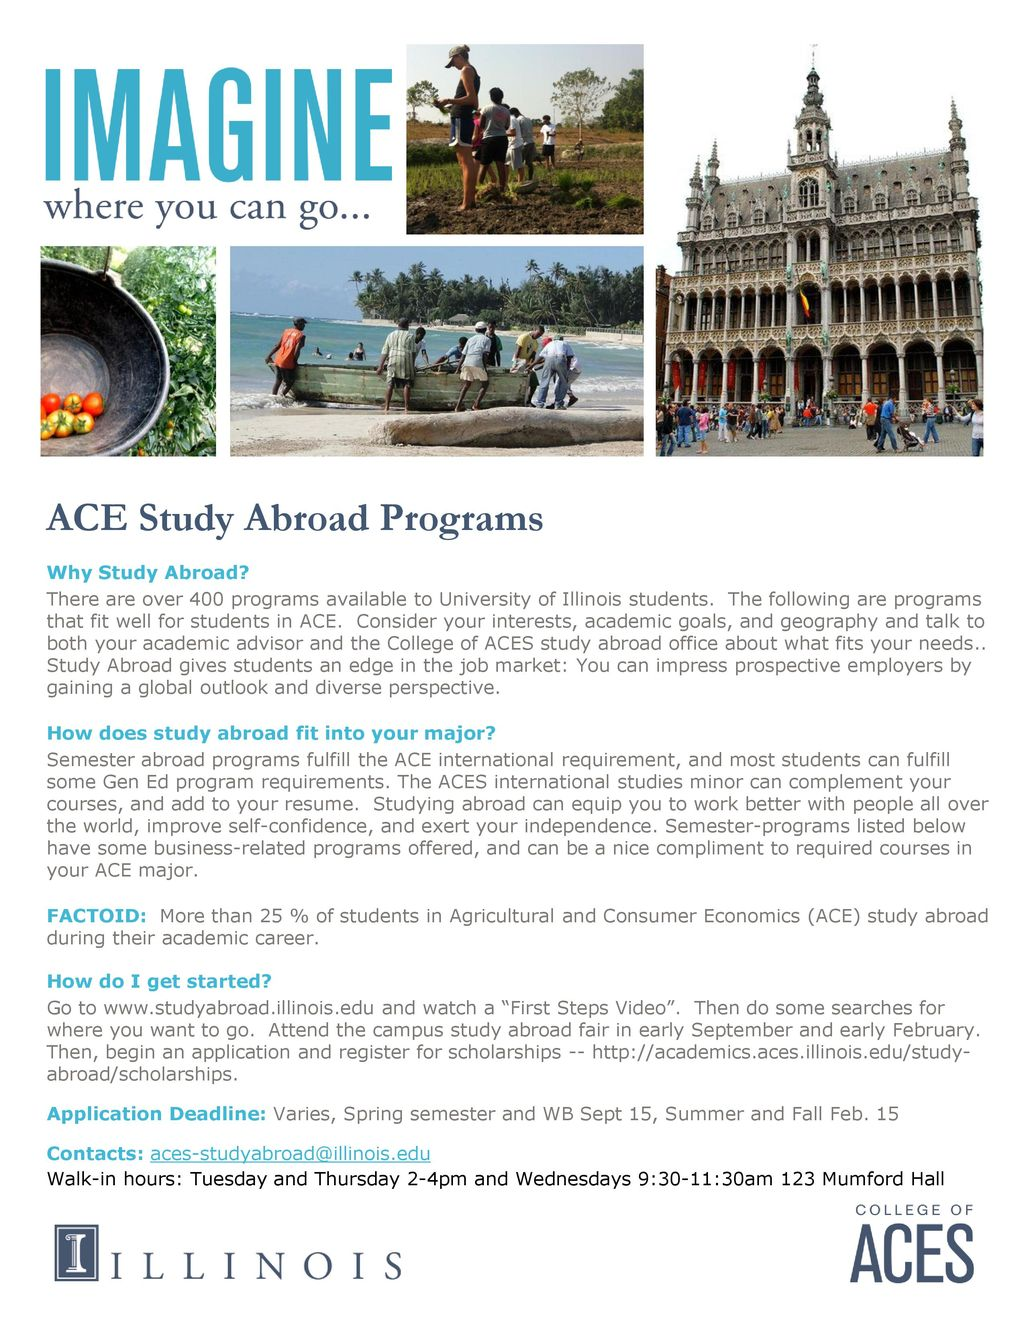 ACE Study Abroad Programs - ppt download